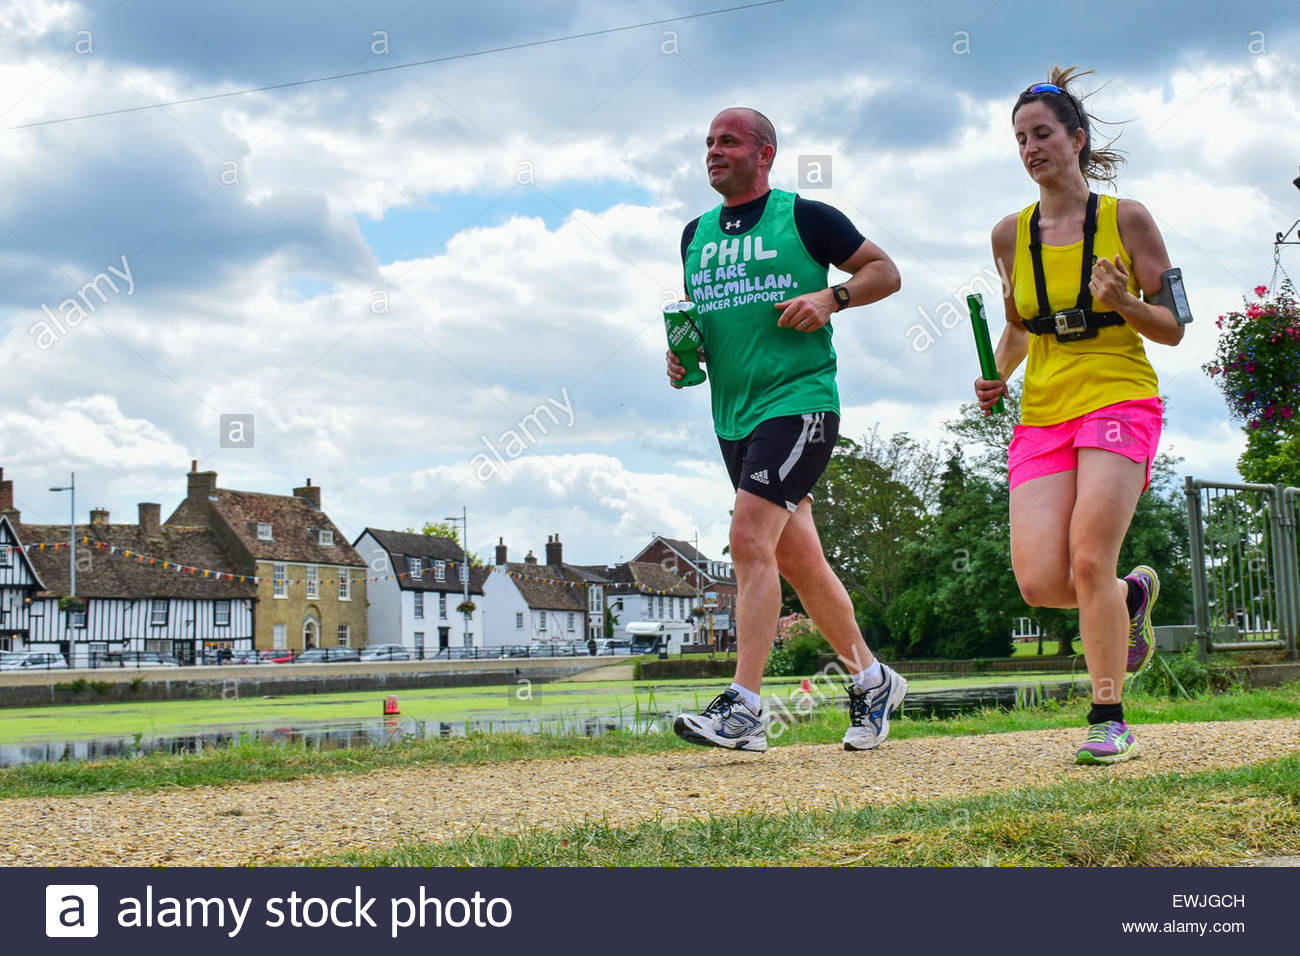 Godmanchester, Cambridgeshire, UK. 27th June, 2015. Runners pass the river with the Causeway in the background in - Stock Image